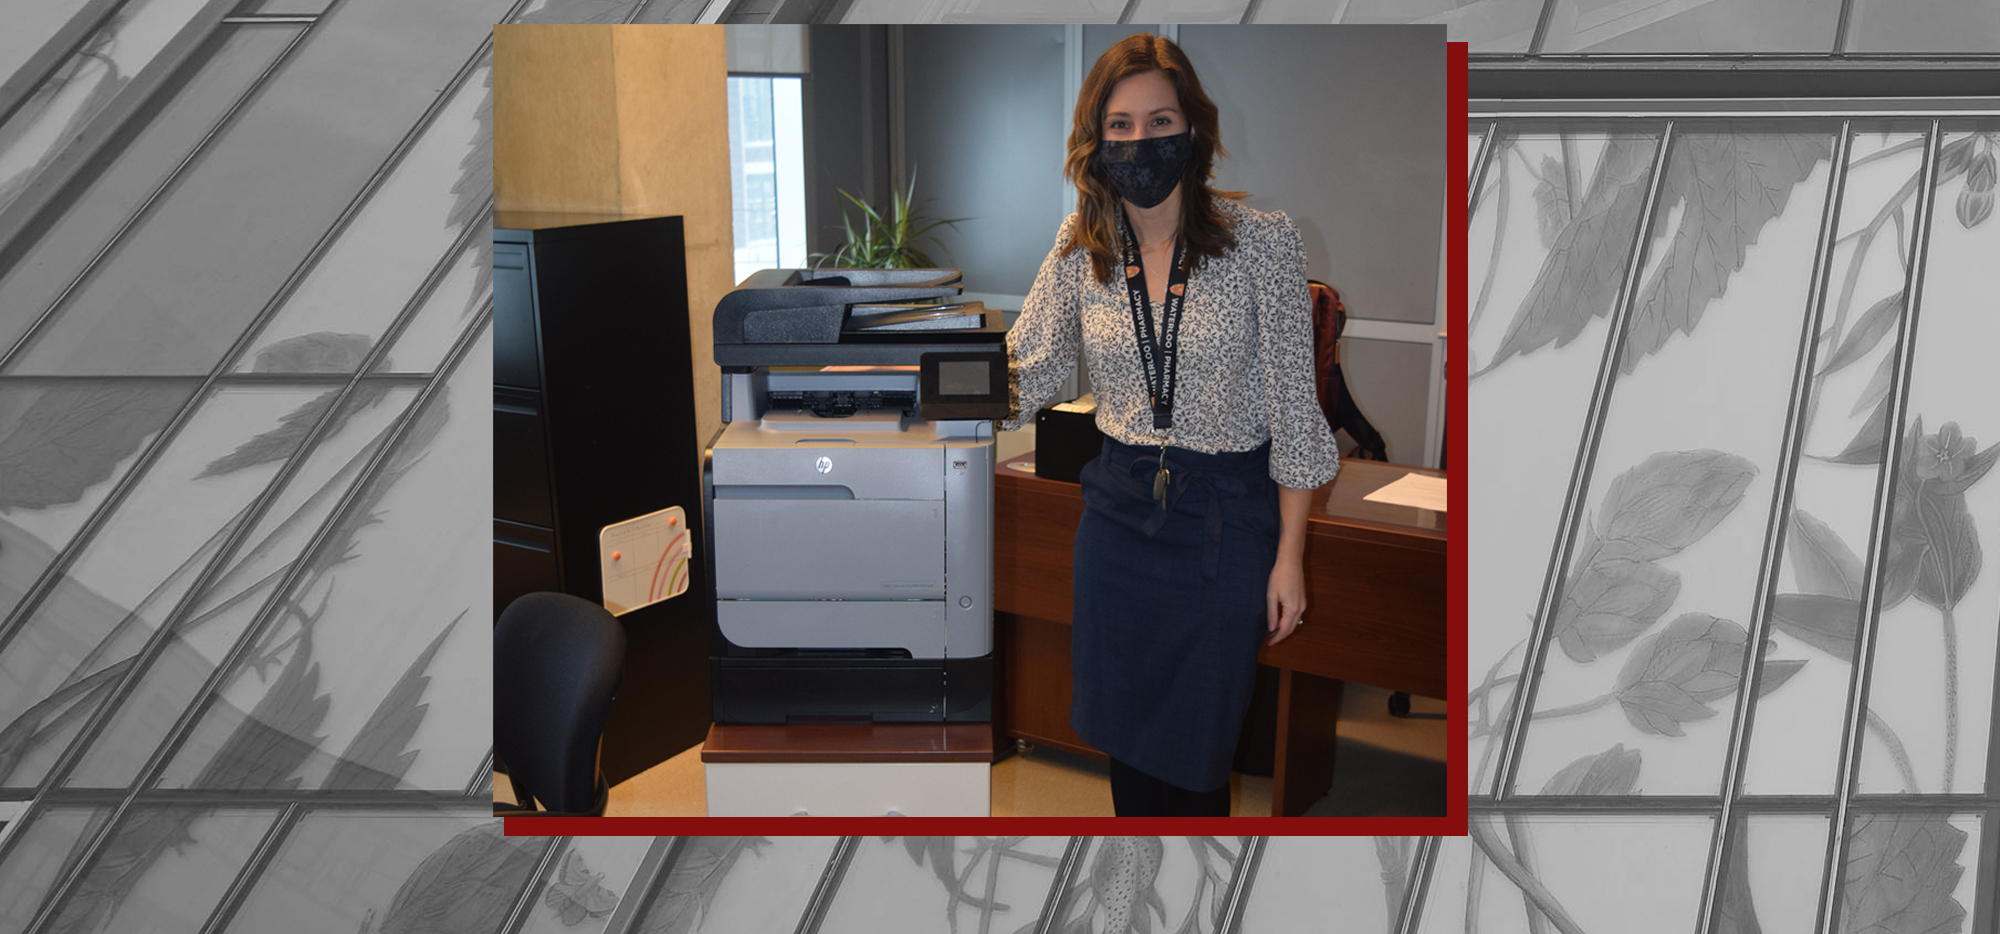 Kaitlin wearing a mask and standing next to a printer